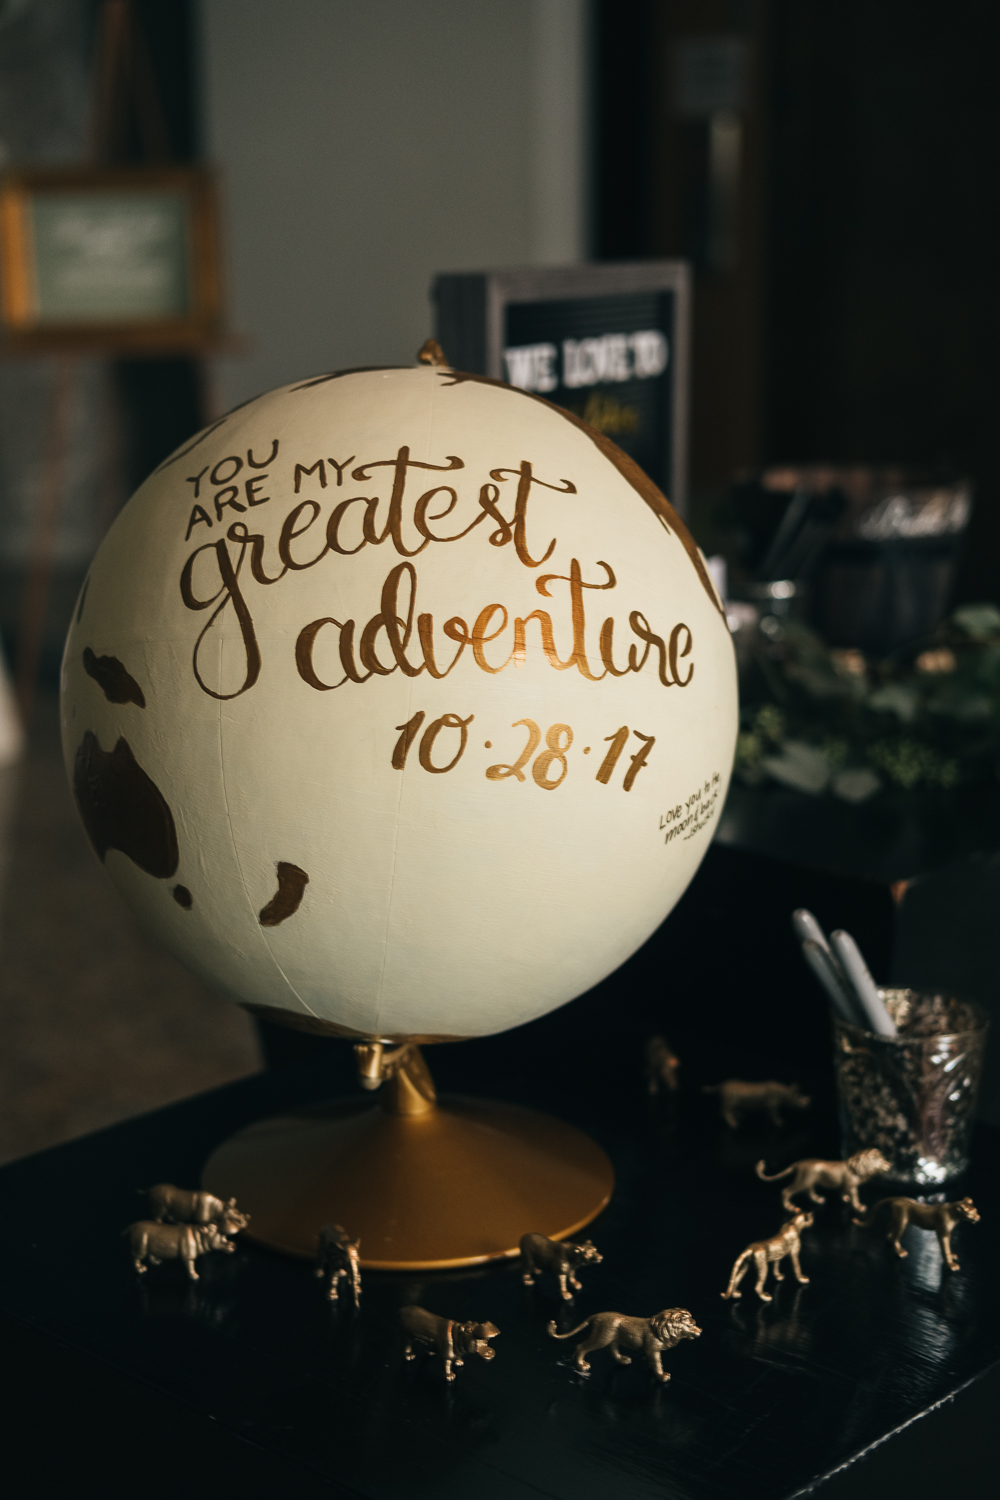 You Are My Greatest Adventure globe for guests to sign at wedding reception in Toledo, Ohio